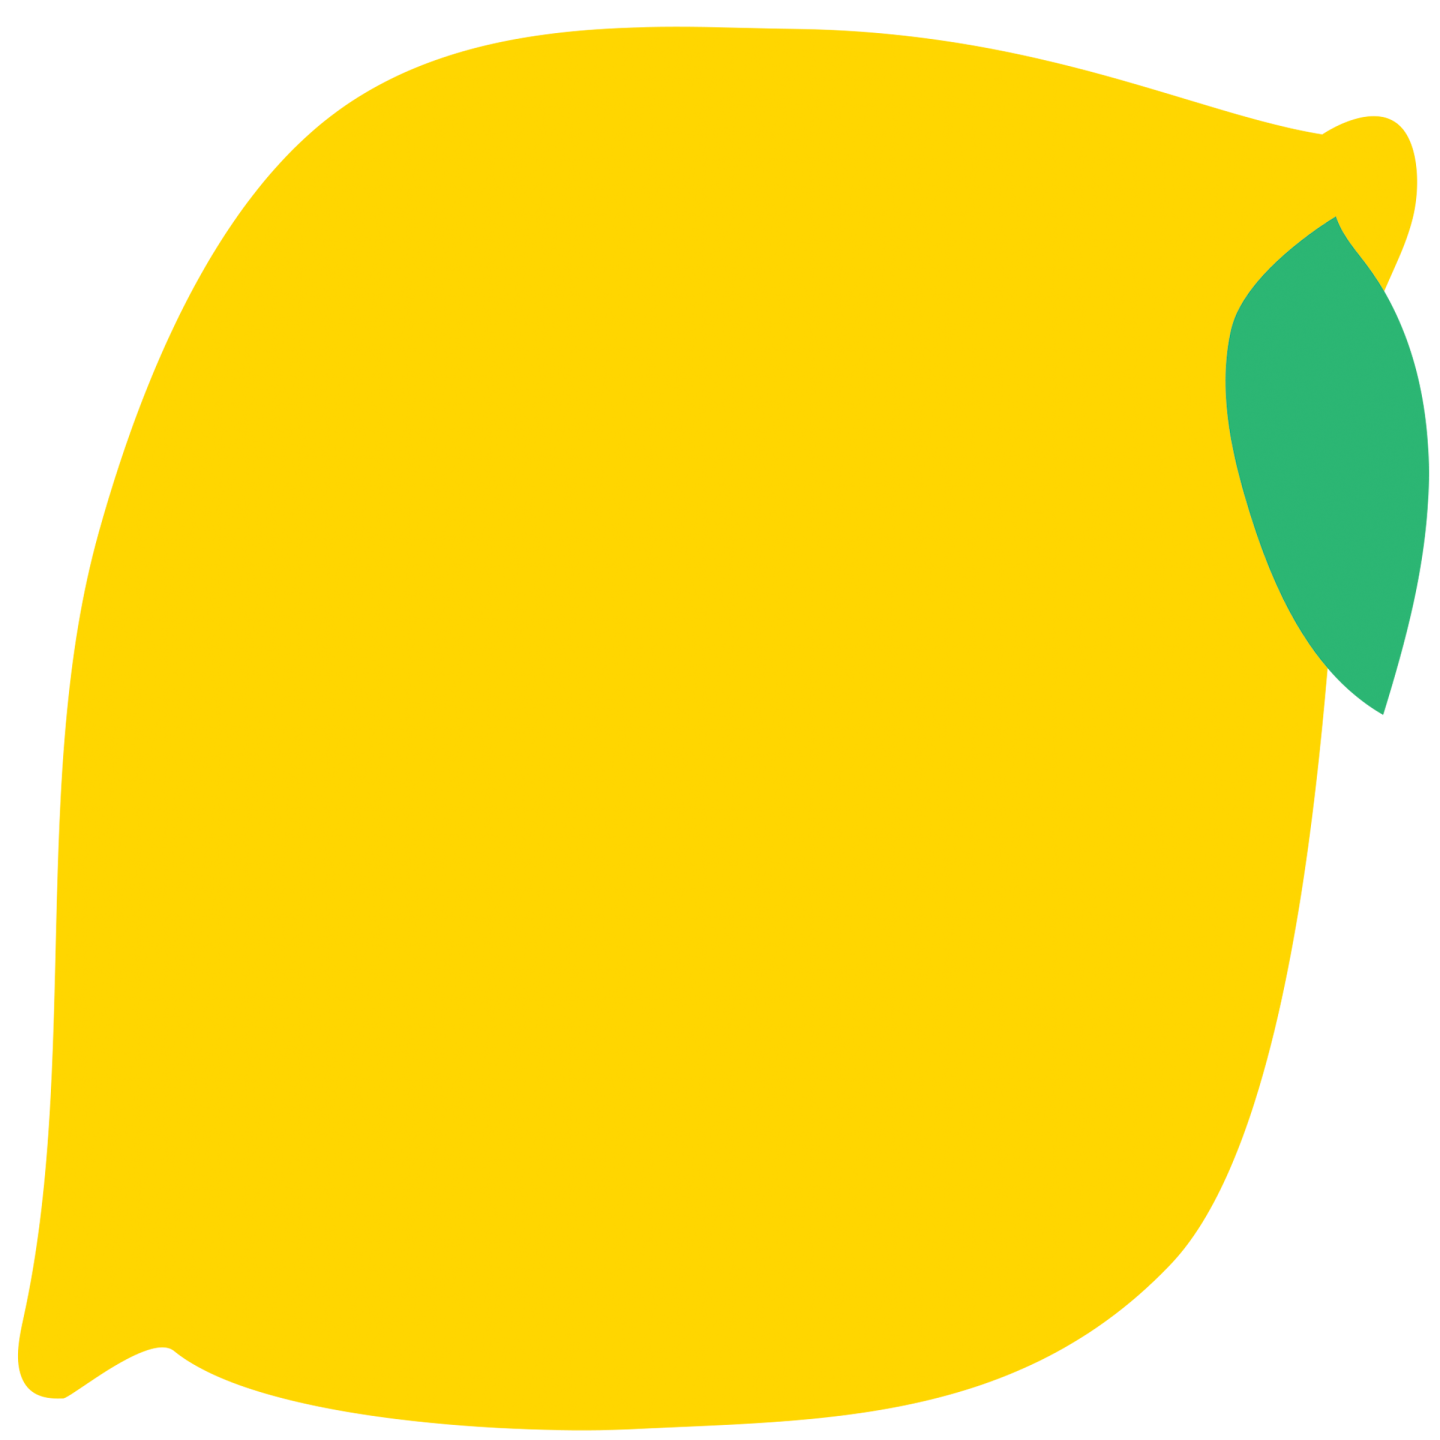 An animated image of a lemon